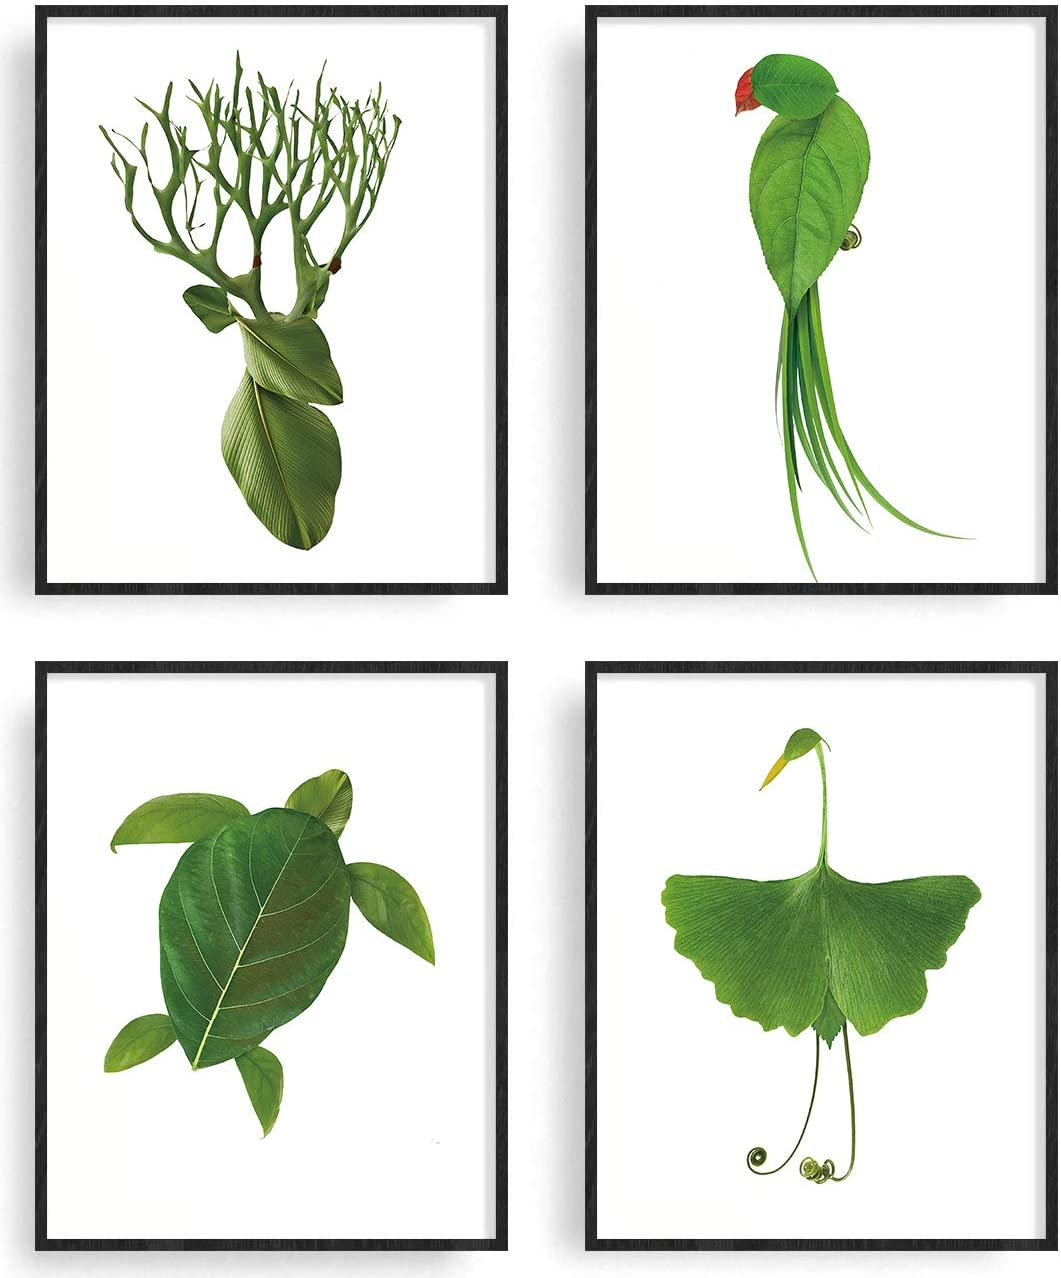 Leaf Prints Botanical Wall Decor Minimalist Wall Art Prints Green Leaves Botanical Poster Creative Christmas Decor Print Canvas Painting Wall Prints Gallery Wall Kit or Home Decoration (Style02)